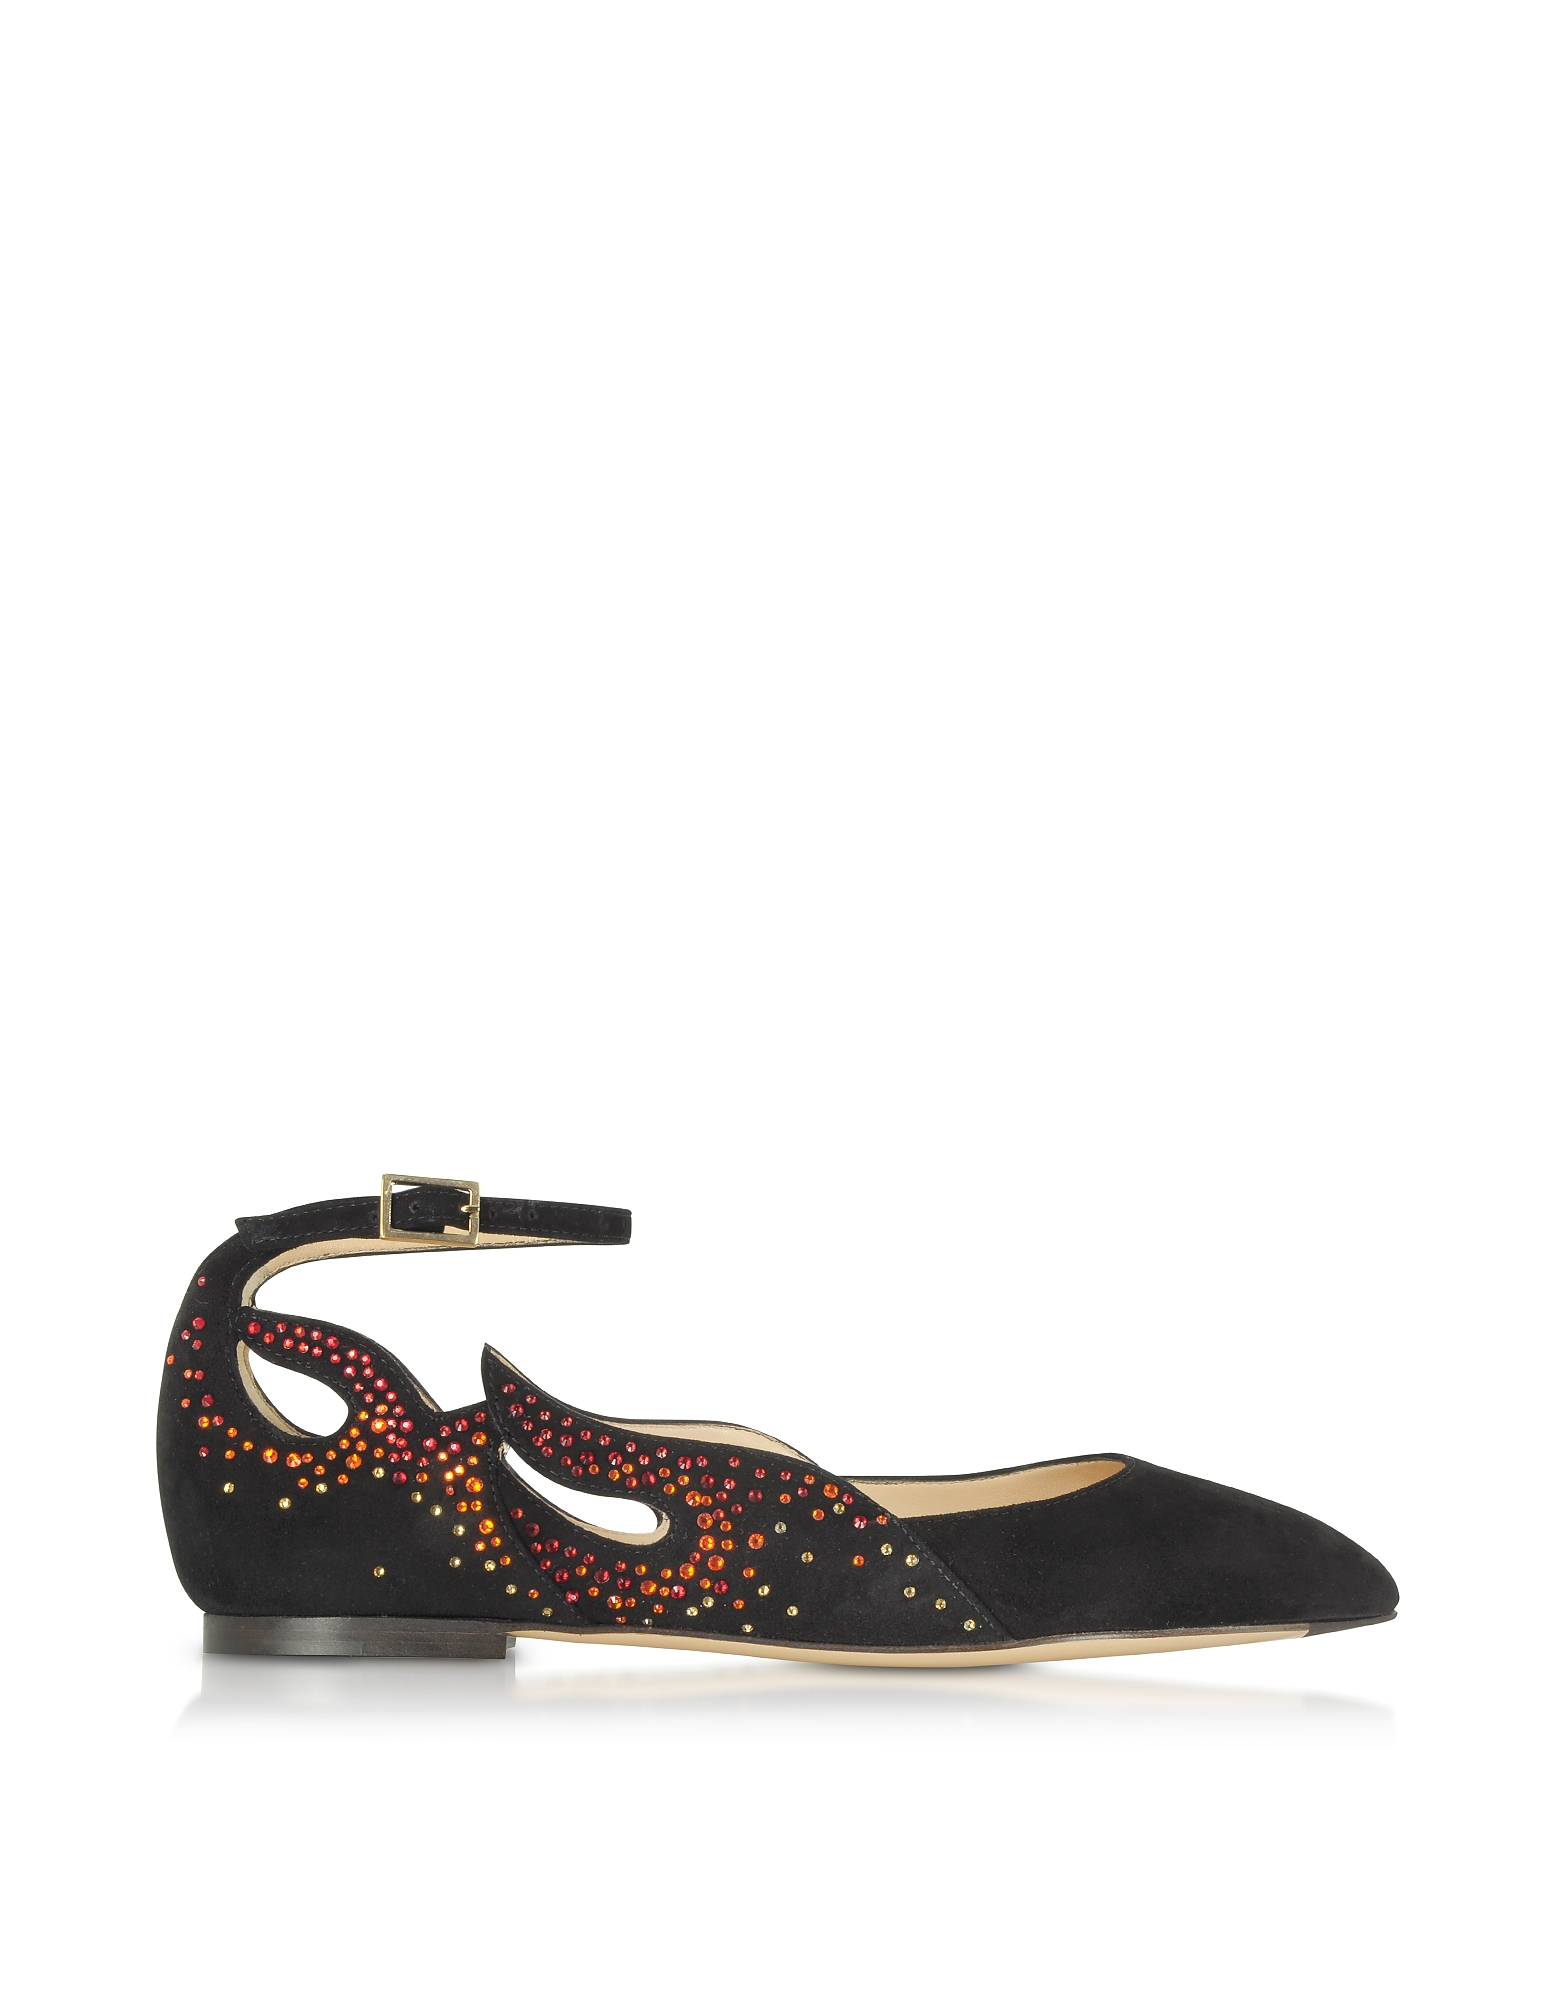 Charlotte Olympia Designer Shoes, Feelin